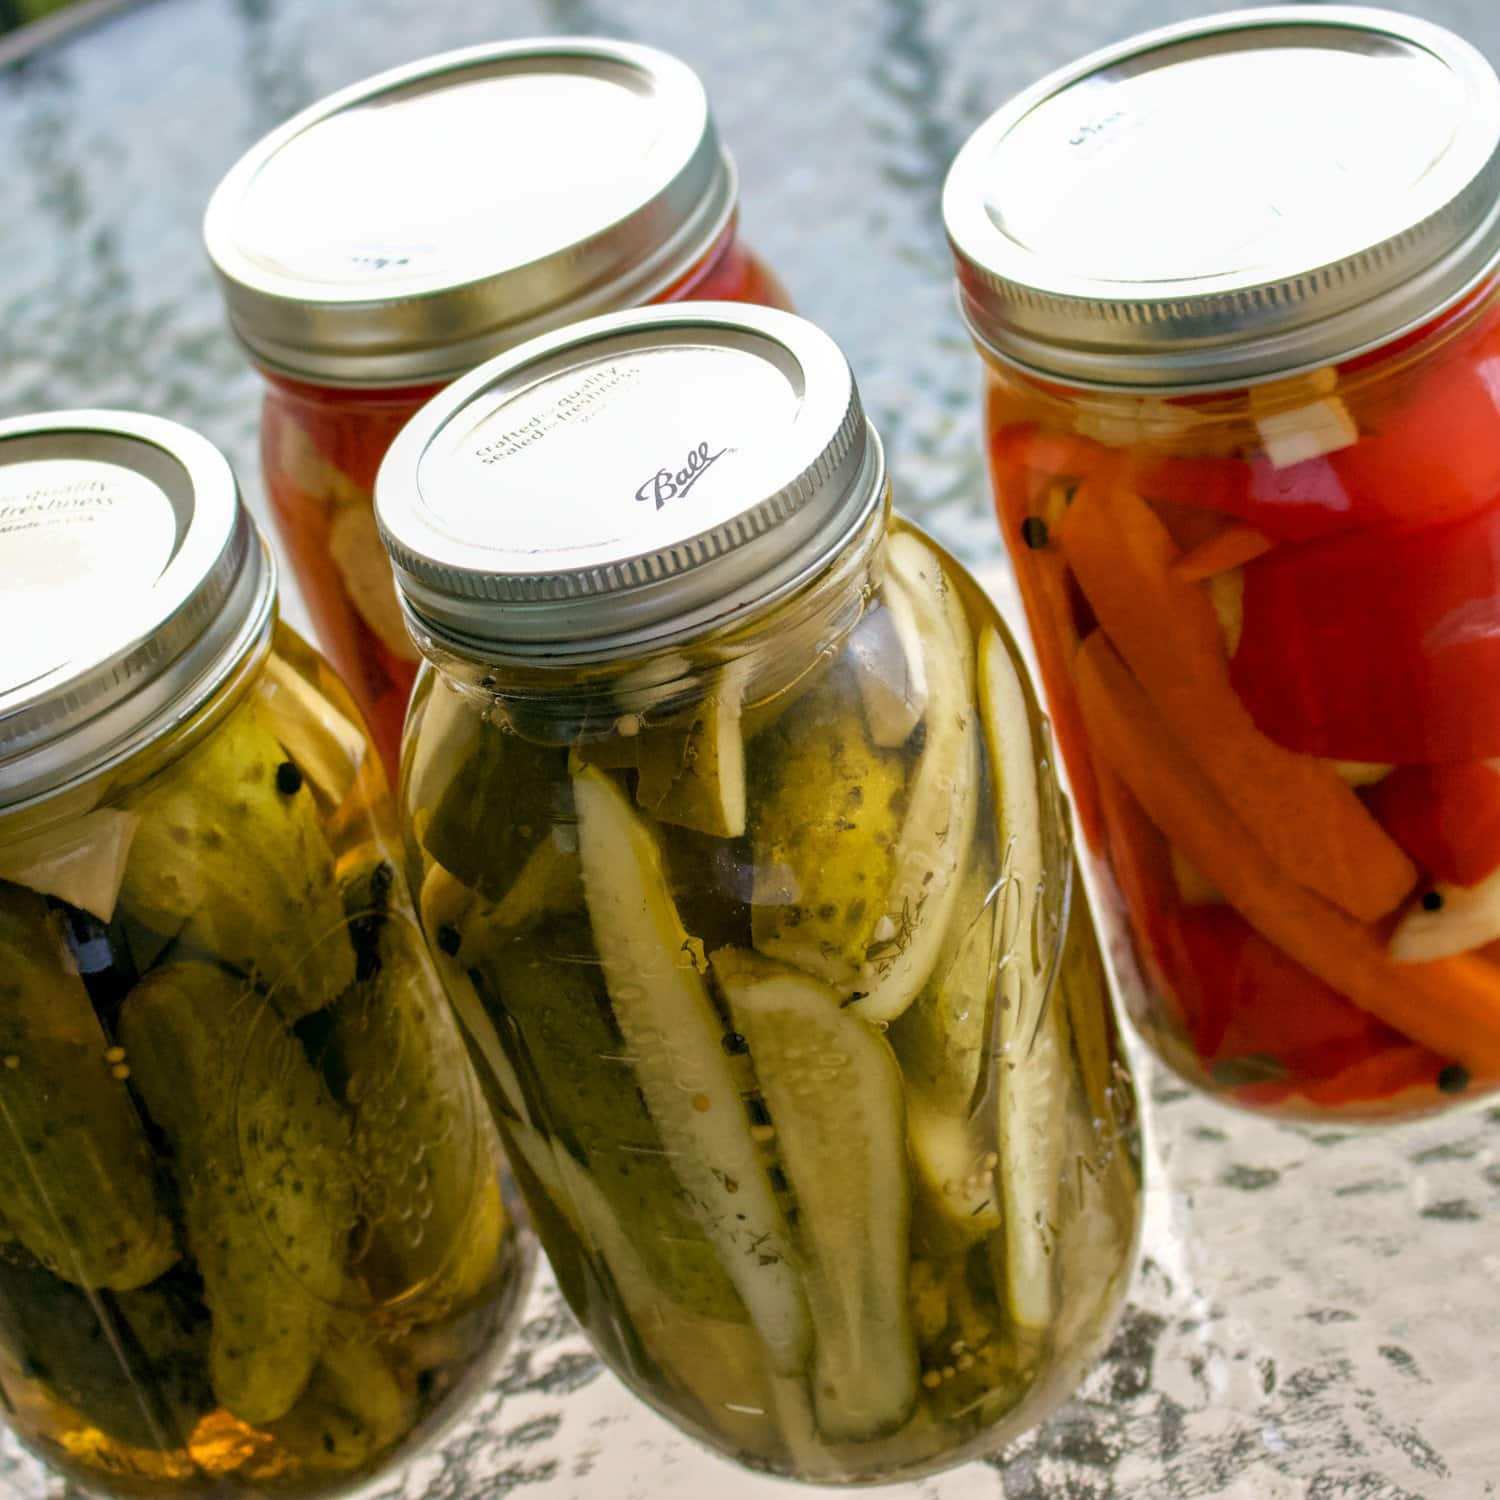 Pickled cucumbers in vinegar- easy recipe- pickle cucumbers in the fall and store them in a cool place. Consume them all winter with your favorite foods.